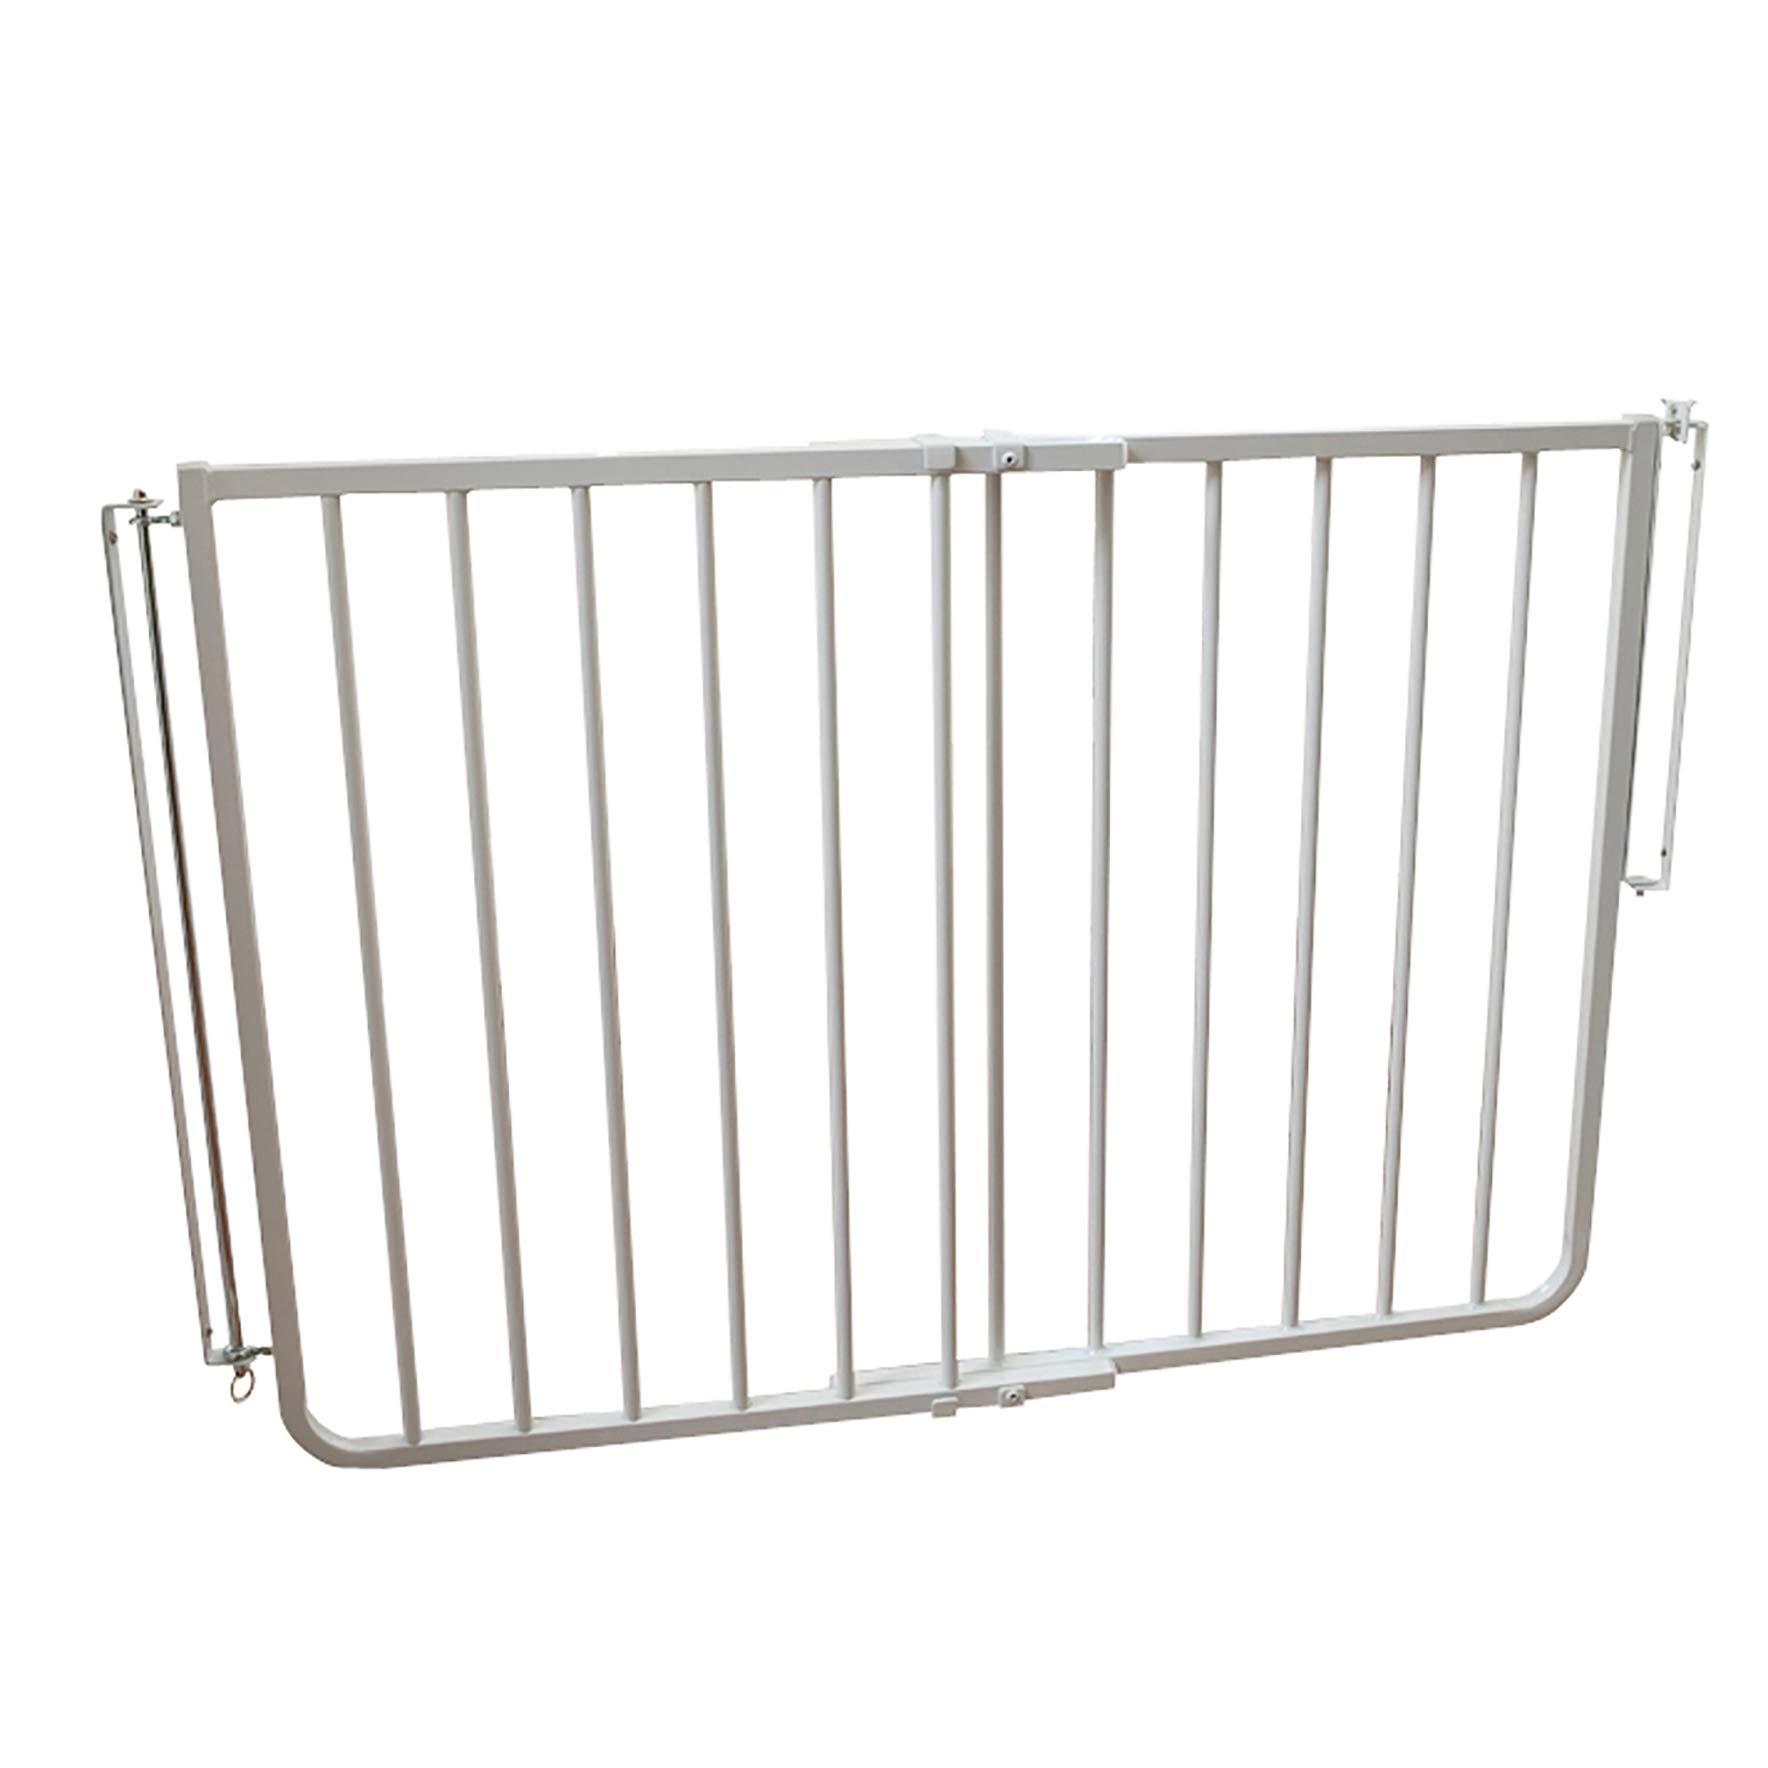 Cardinal Gates Stairway Special Outdoor Child Safety Gate /Model:SS30-ODWH-C /Designed for top of stairway use / Color: White by Cardinal Gates (Image #1)